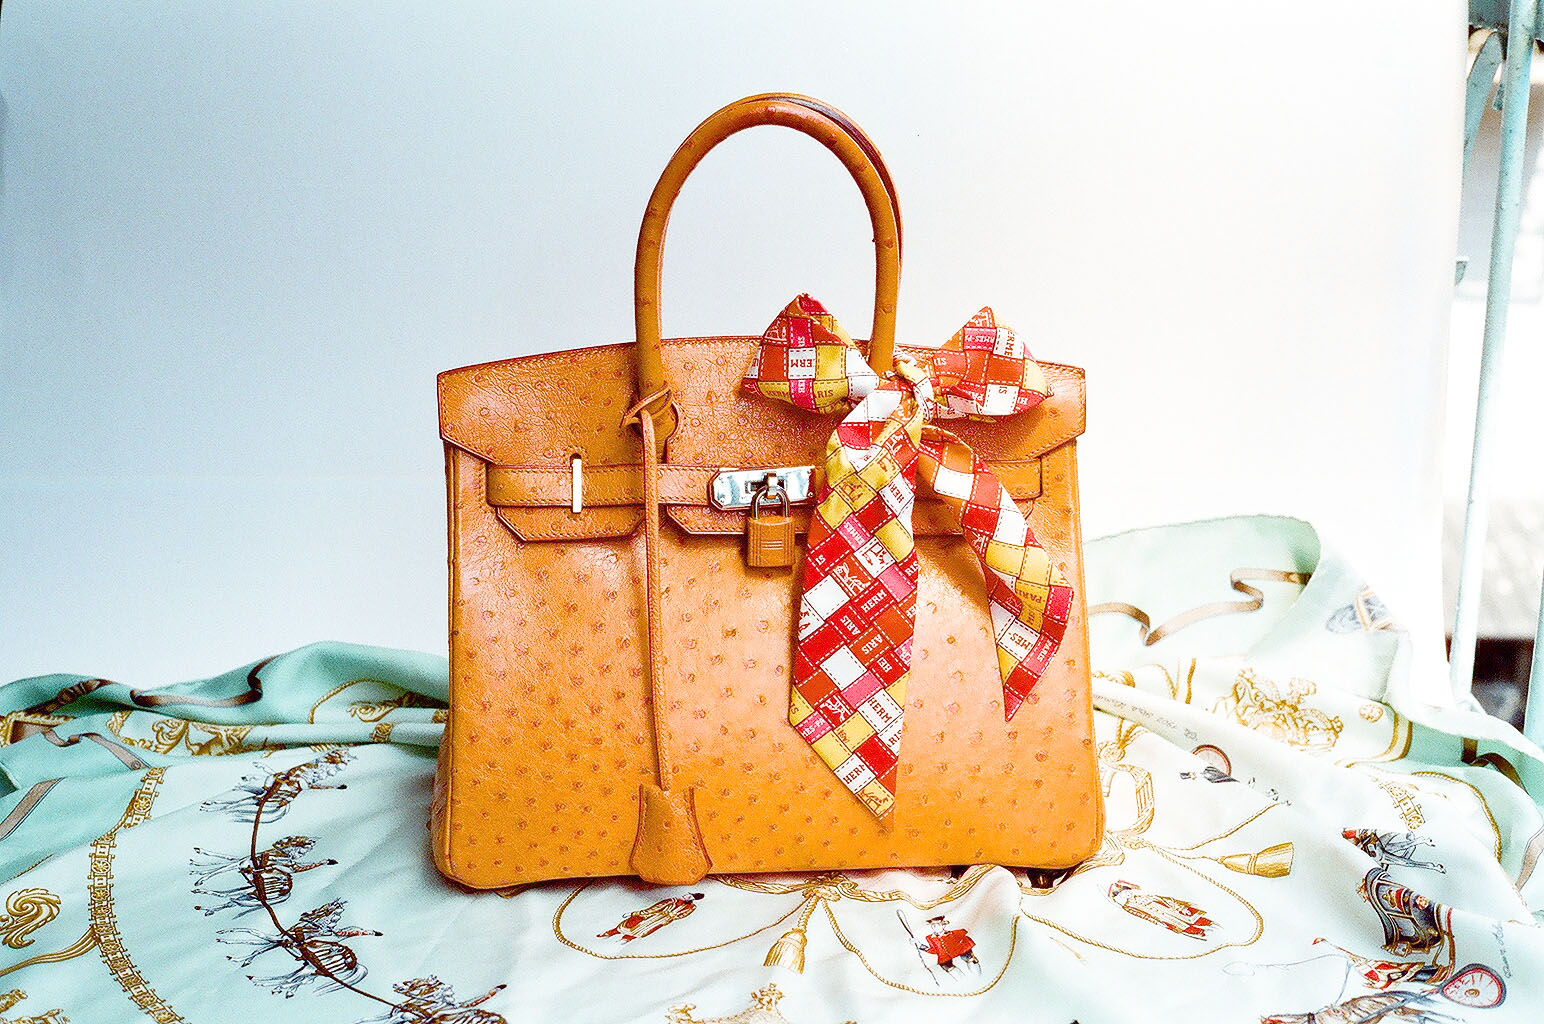 hermes tote - Birkin bag - Wikipedia, the free encyclopedia